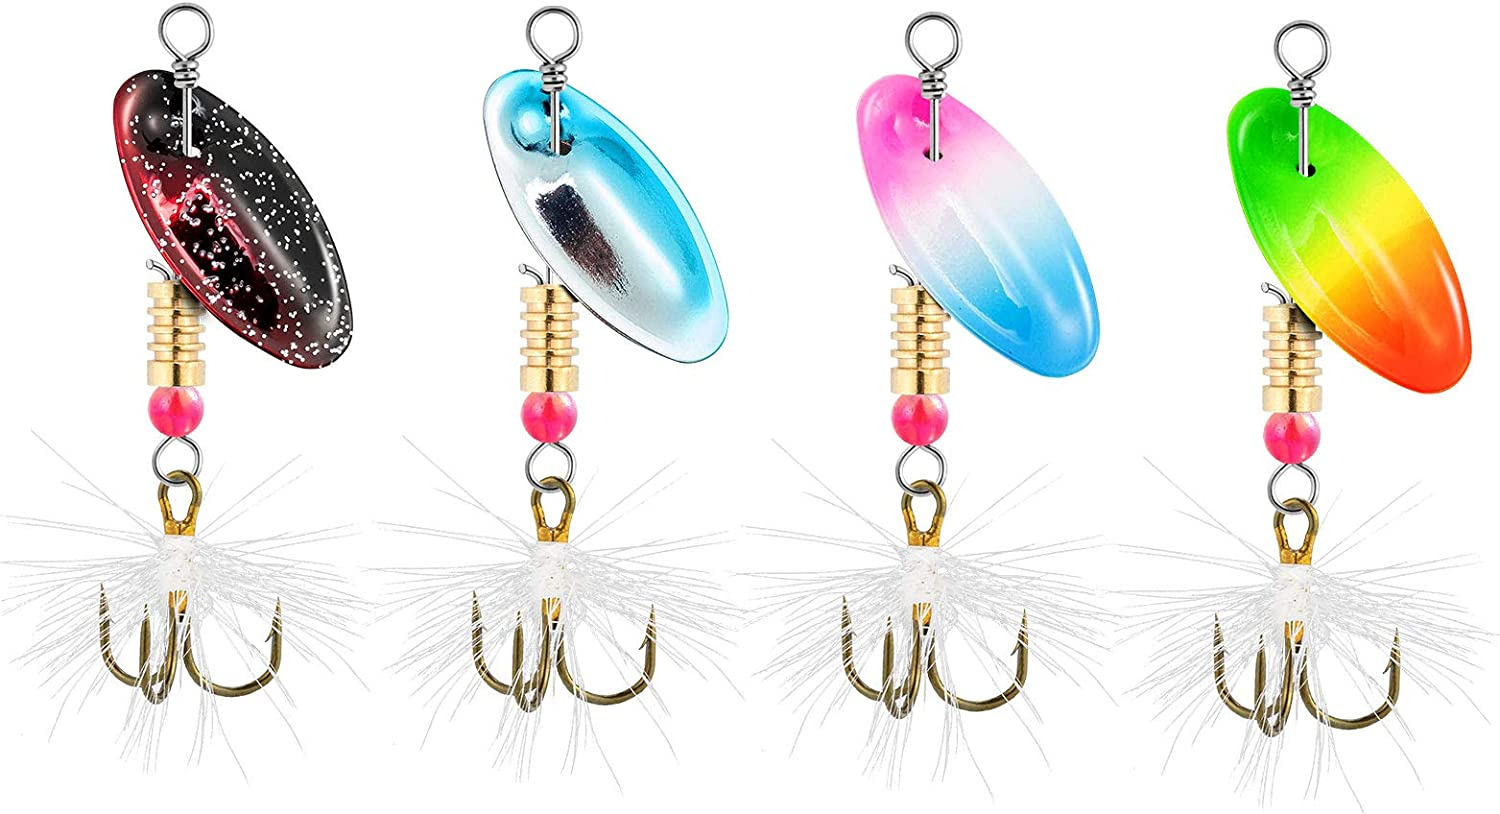 Dr.Fish 4 Pack Wire-Through-Blade Choice Spinner 1 8oz Finally popular brand Rooster Kit Tail